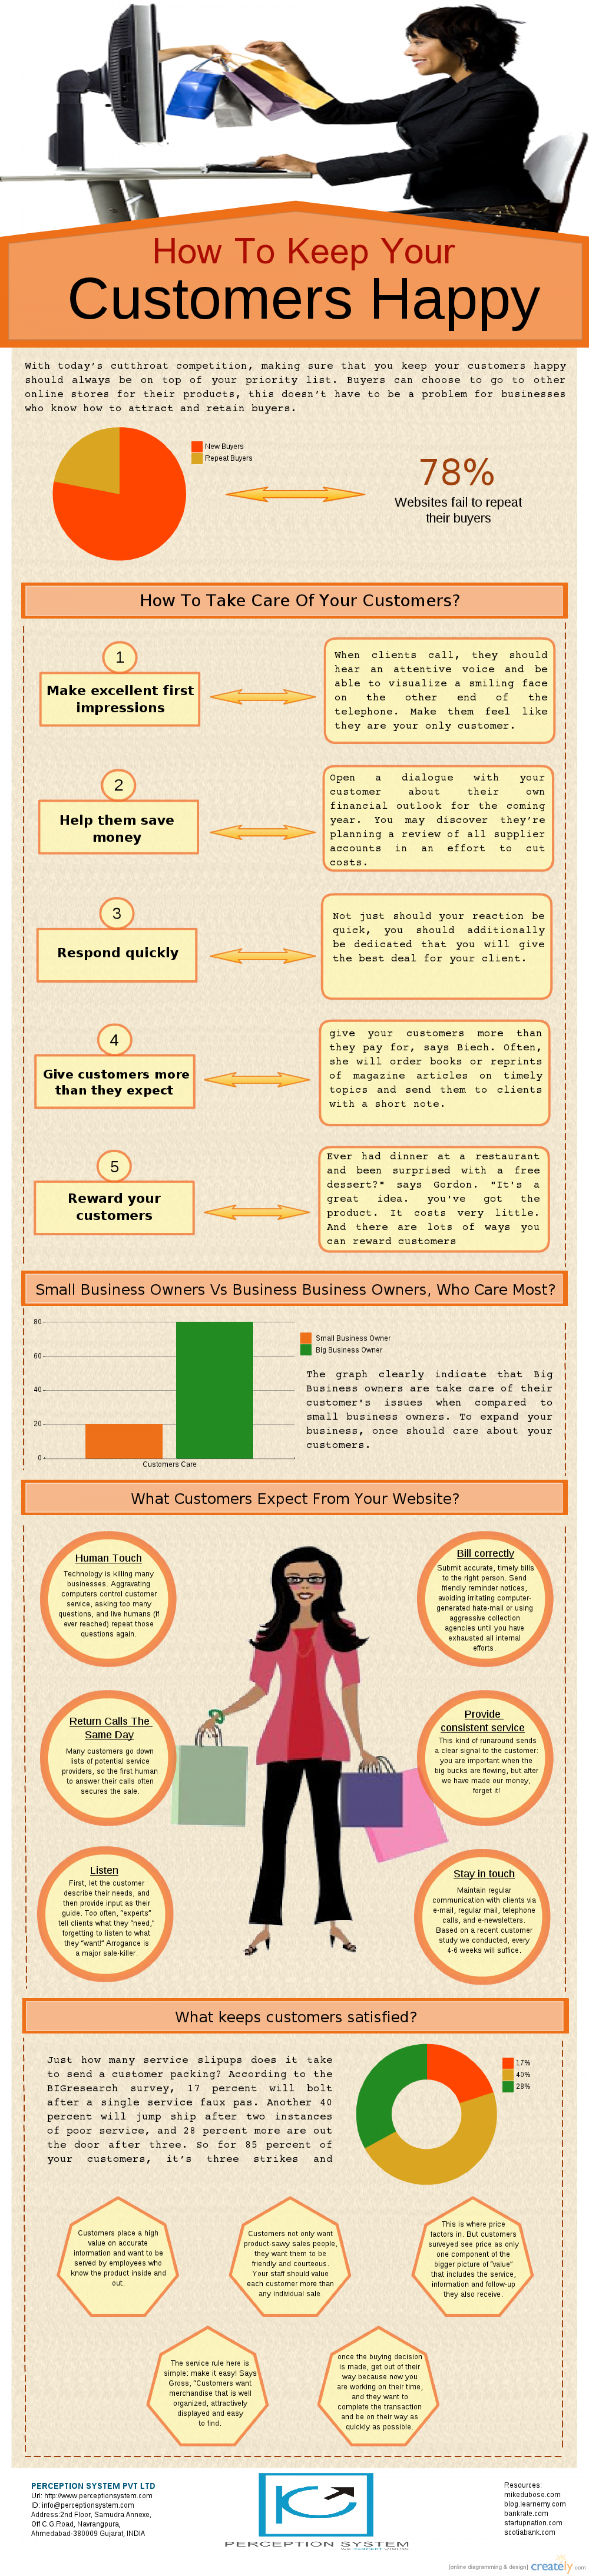 How To Keep Your Customers Happy Infographic